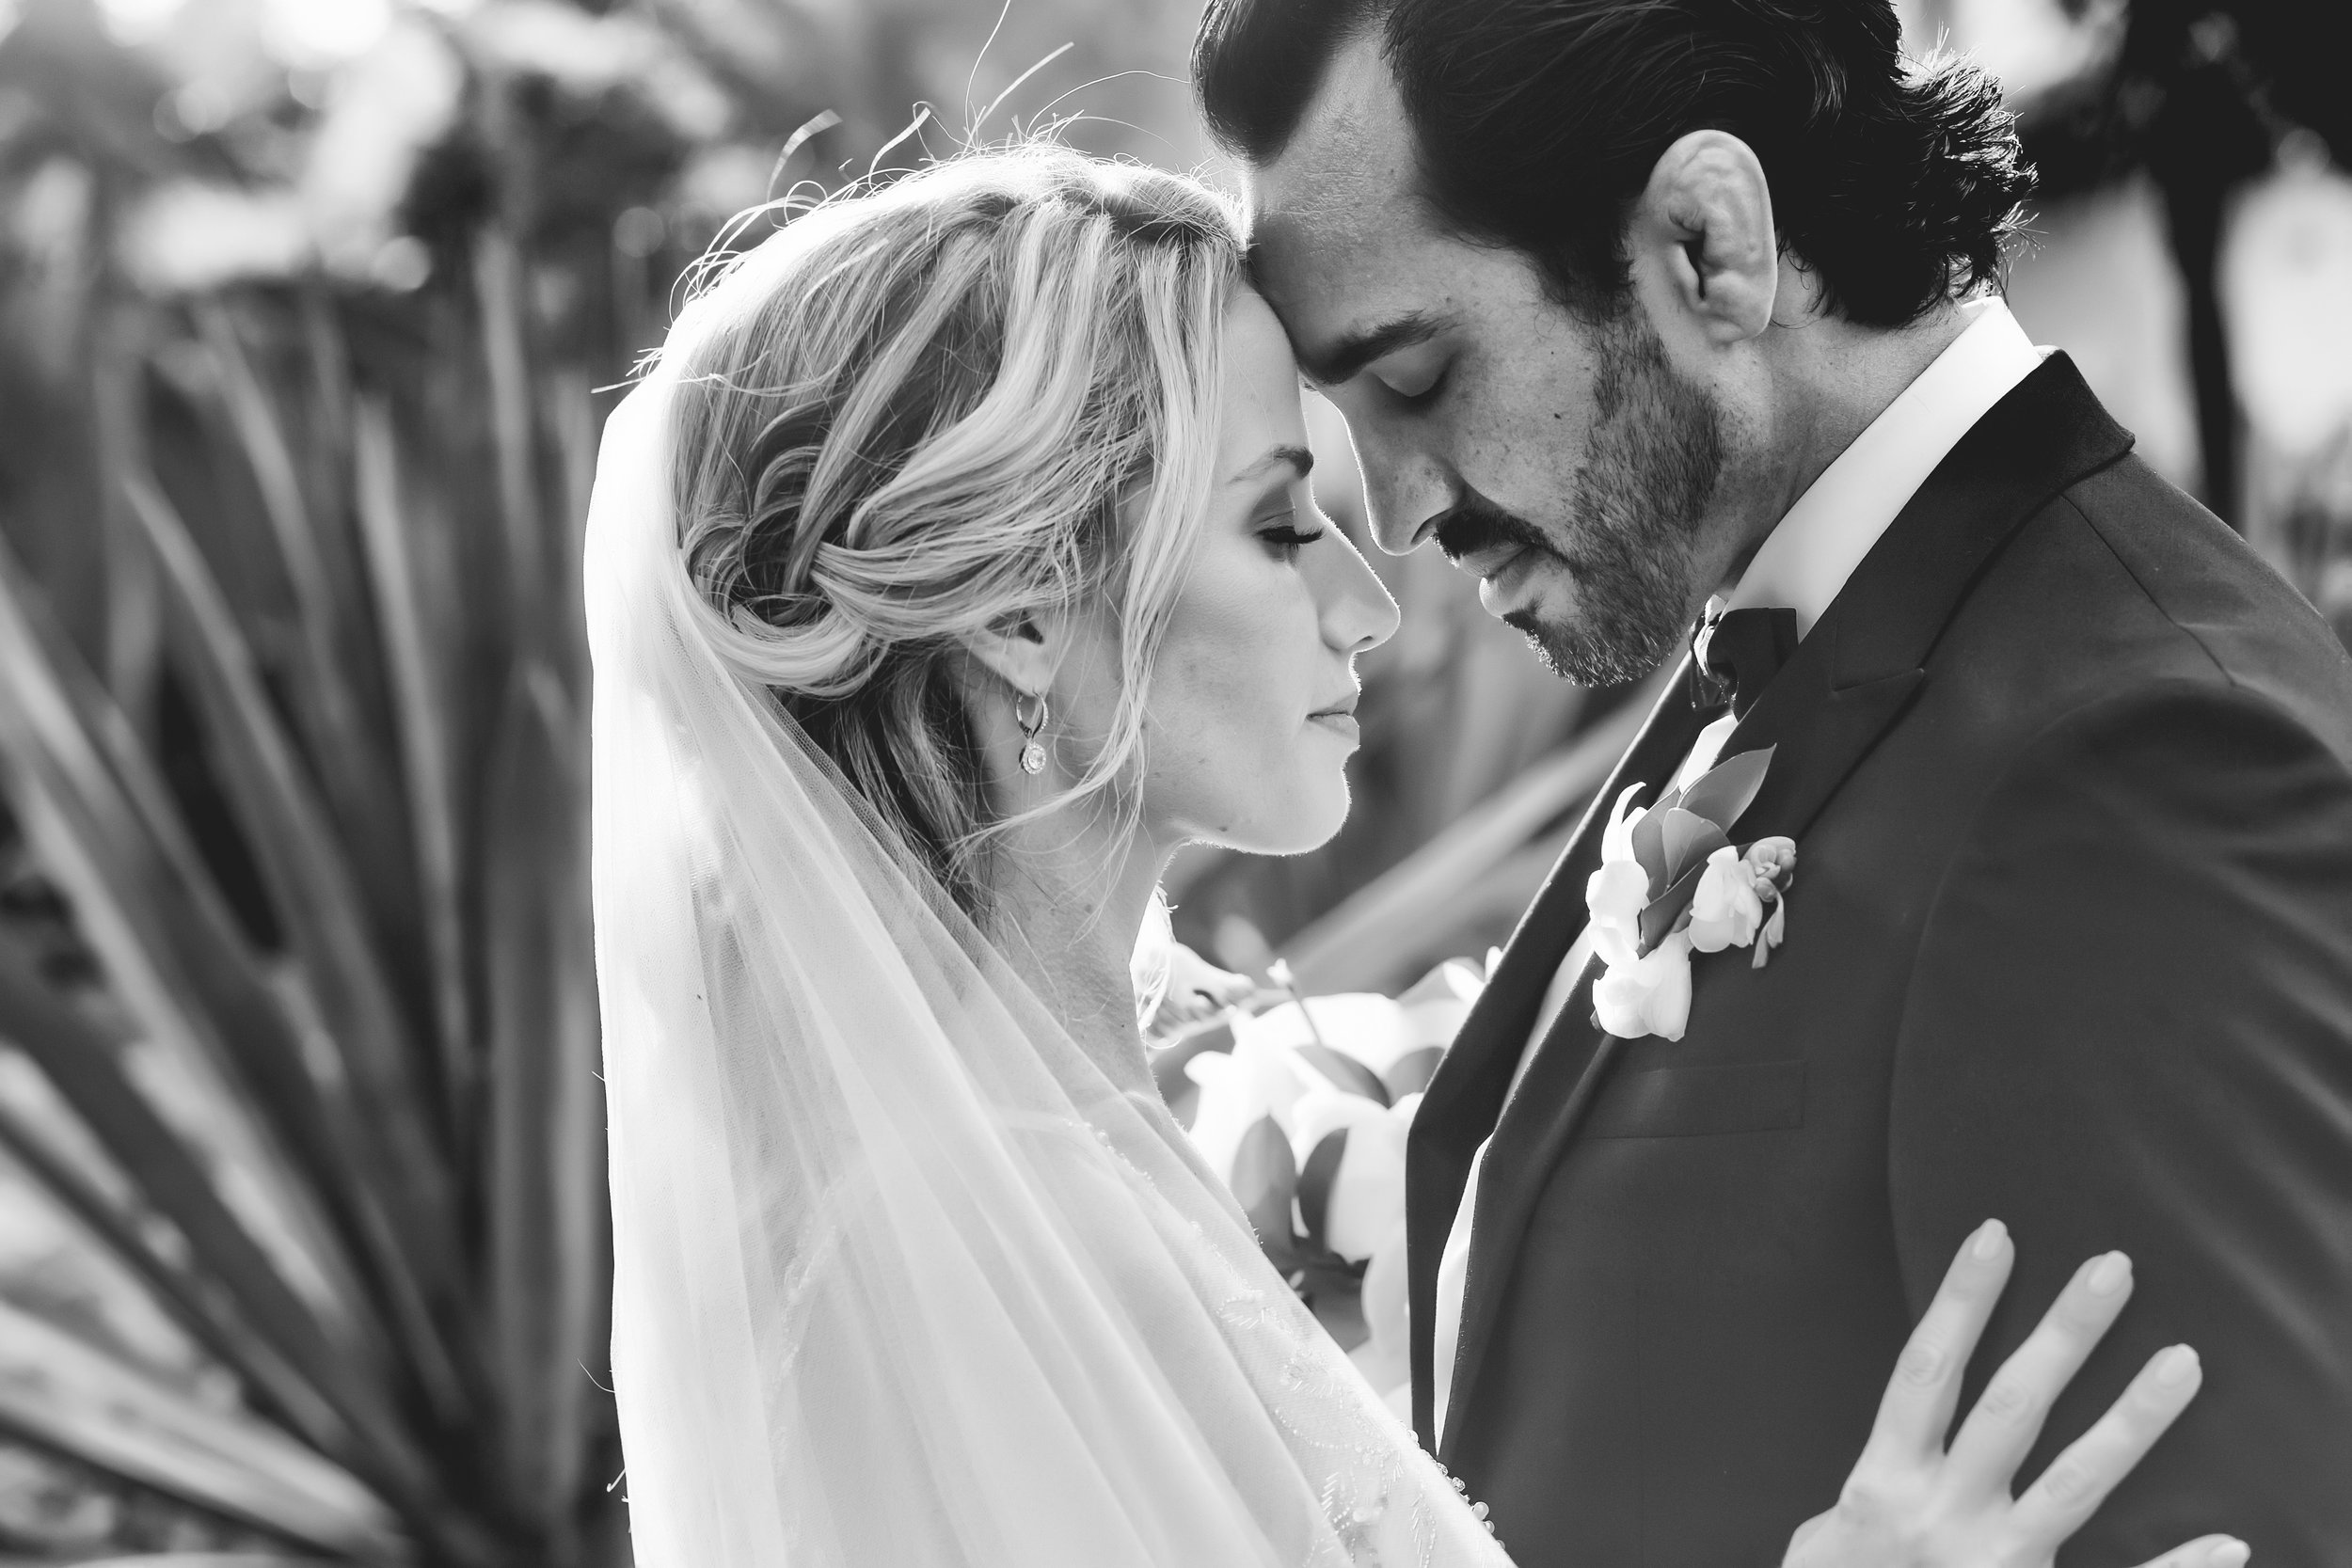 wedding pack 1 - Full Time (max 12 hrs) , engagement e-session , online gallery , Slideshow400-600 edited pictures$25,500 mx